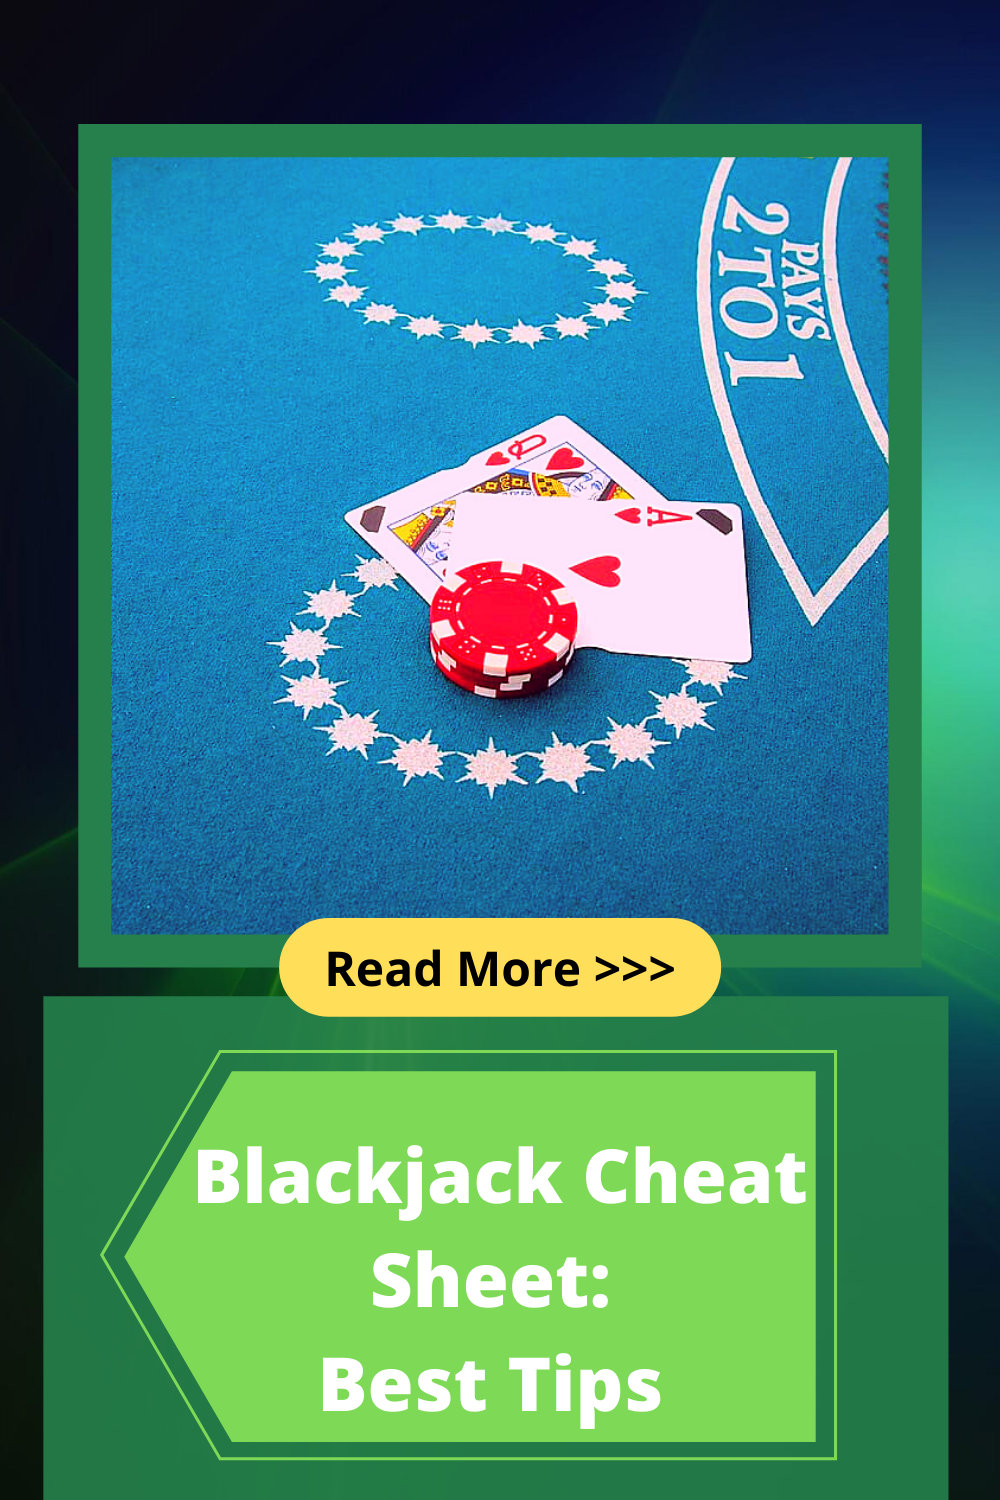 Blackjack Cheat Sheet and How to Use It